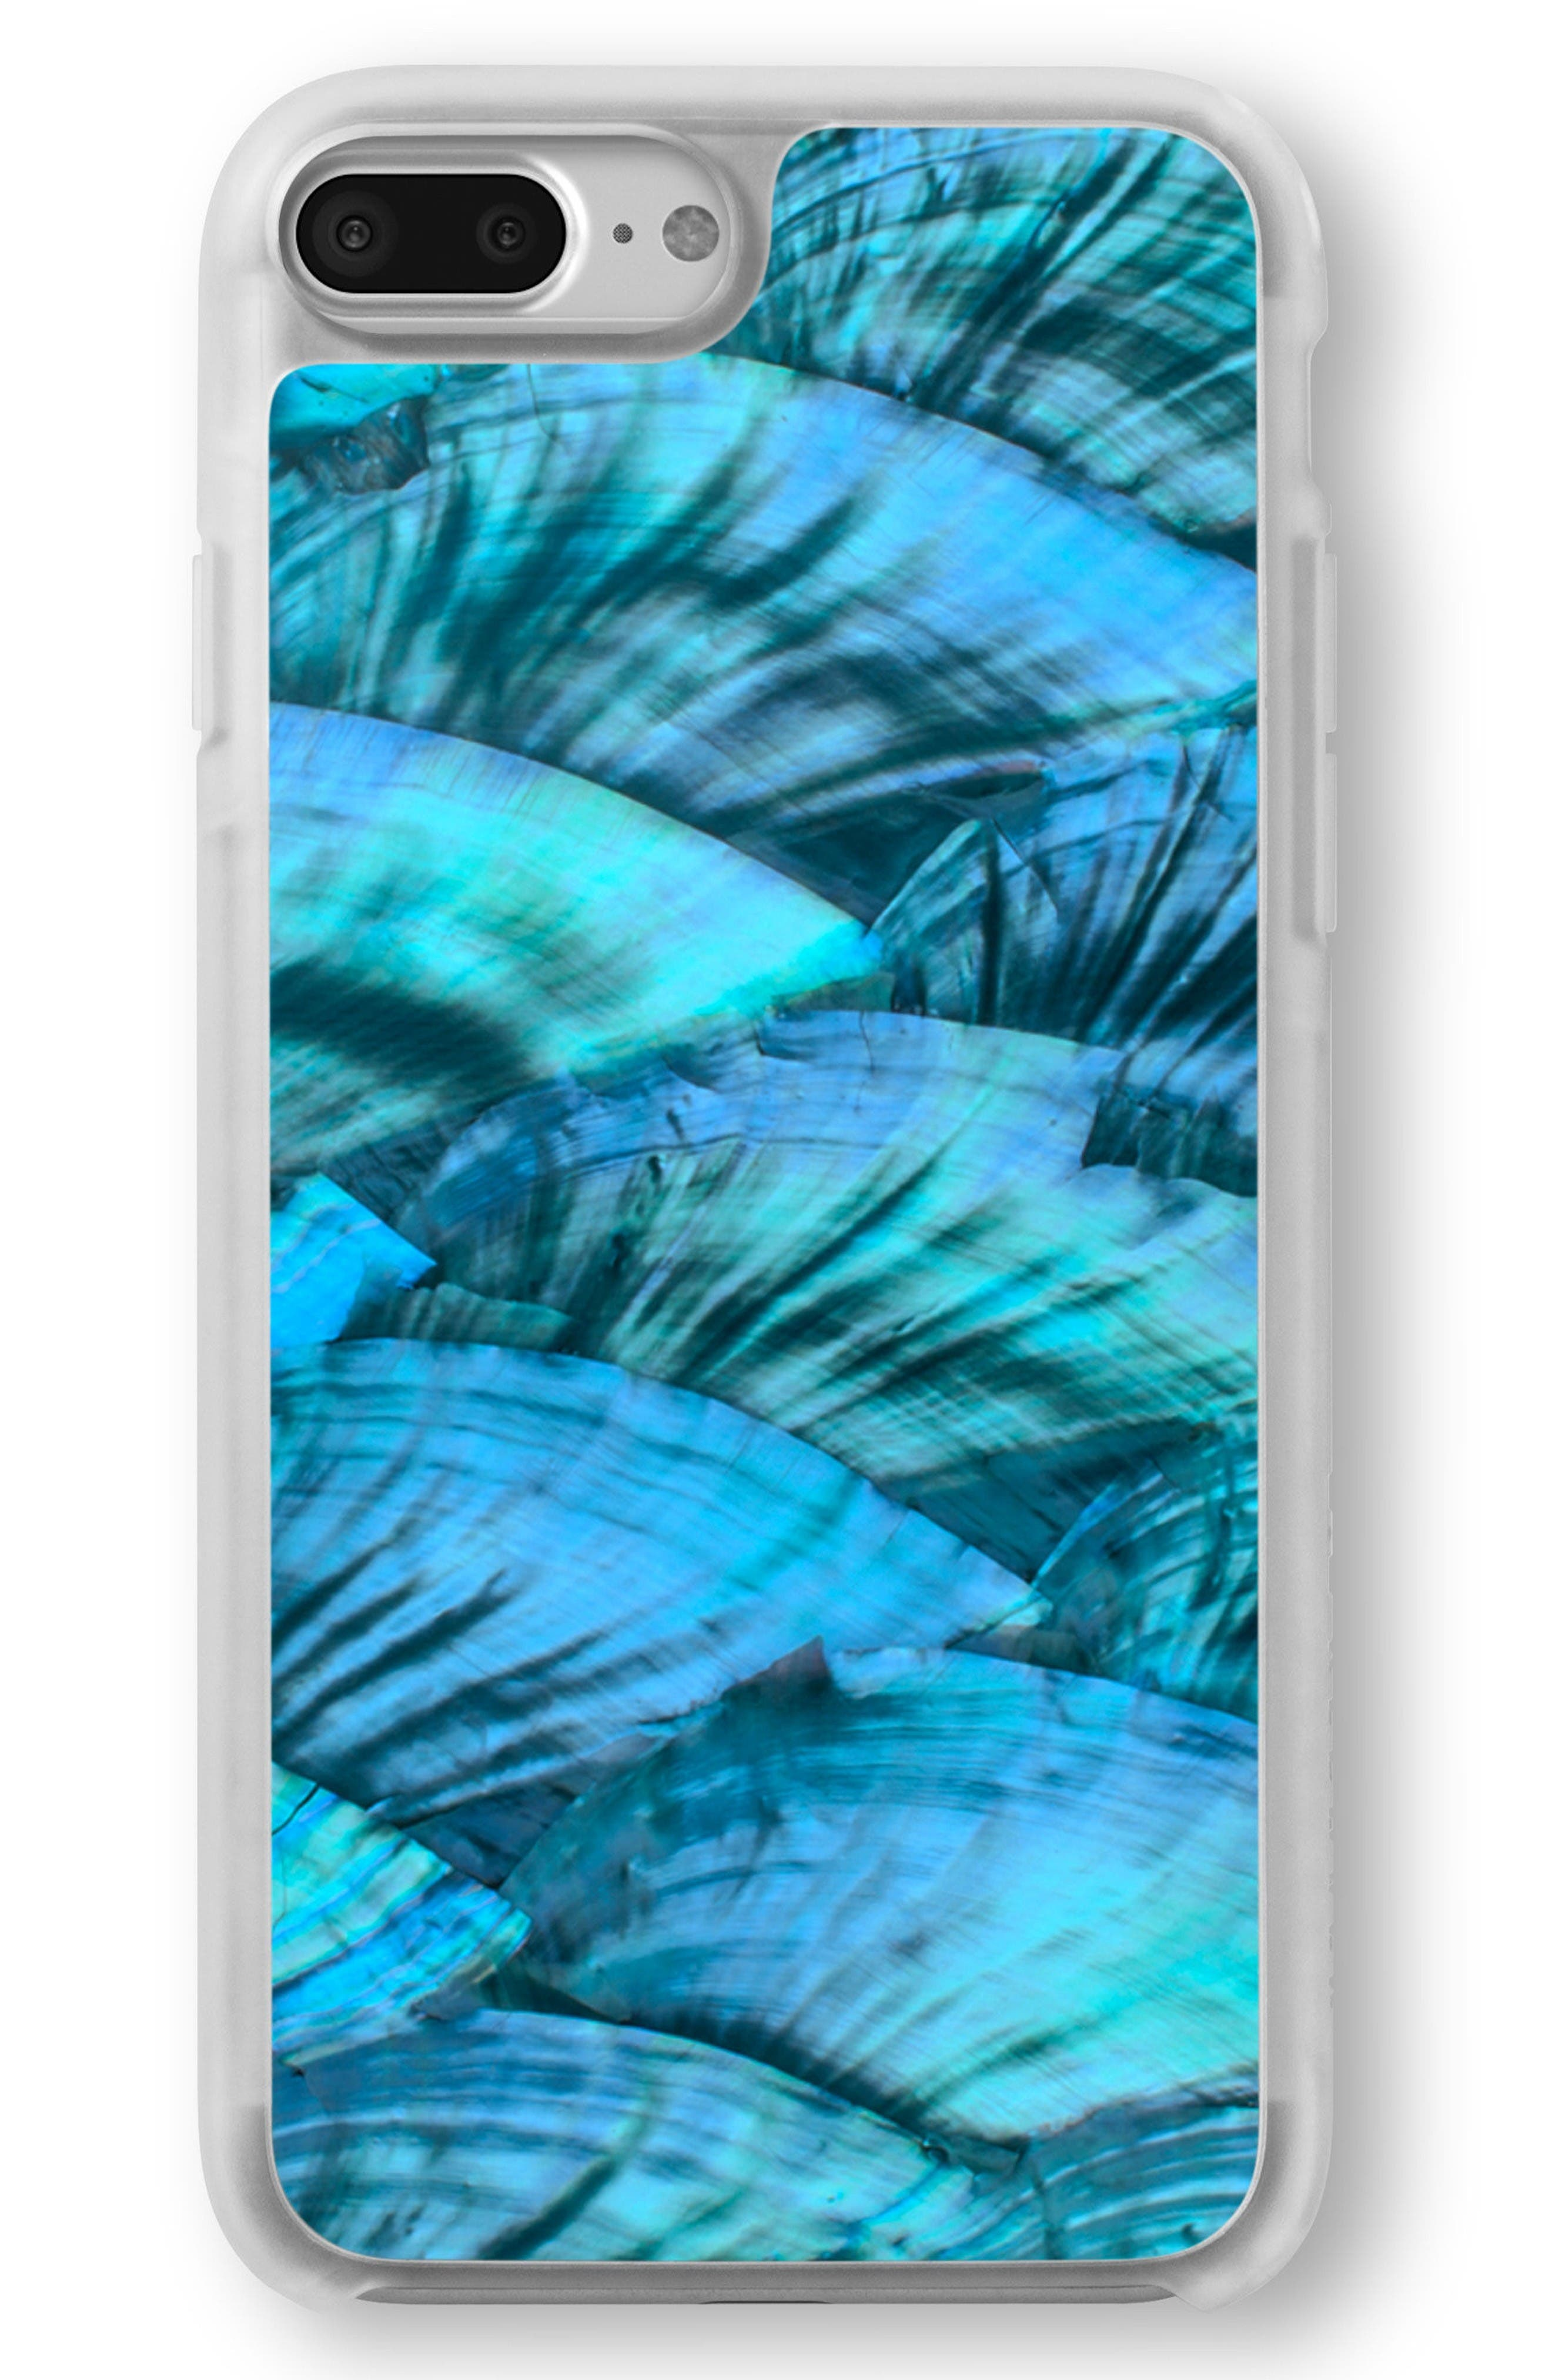 Blue Abalone iPhone 6/6s/7/8 & 6/6s/7/8 Plus Case,                             Main thumbnail 1, color,                             Blue Abalone